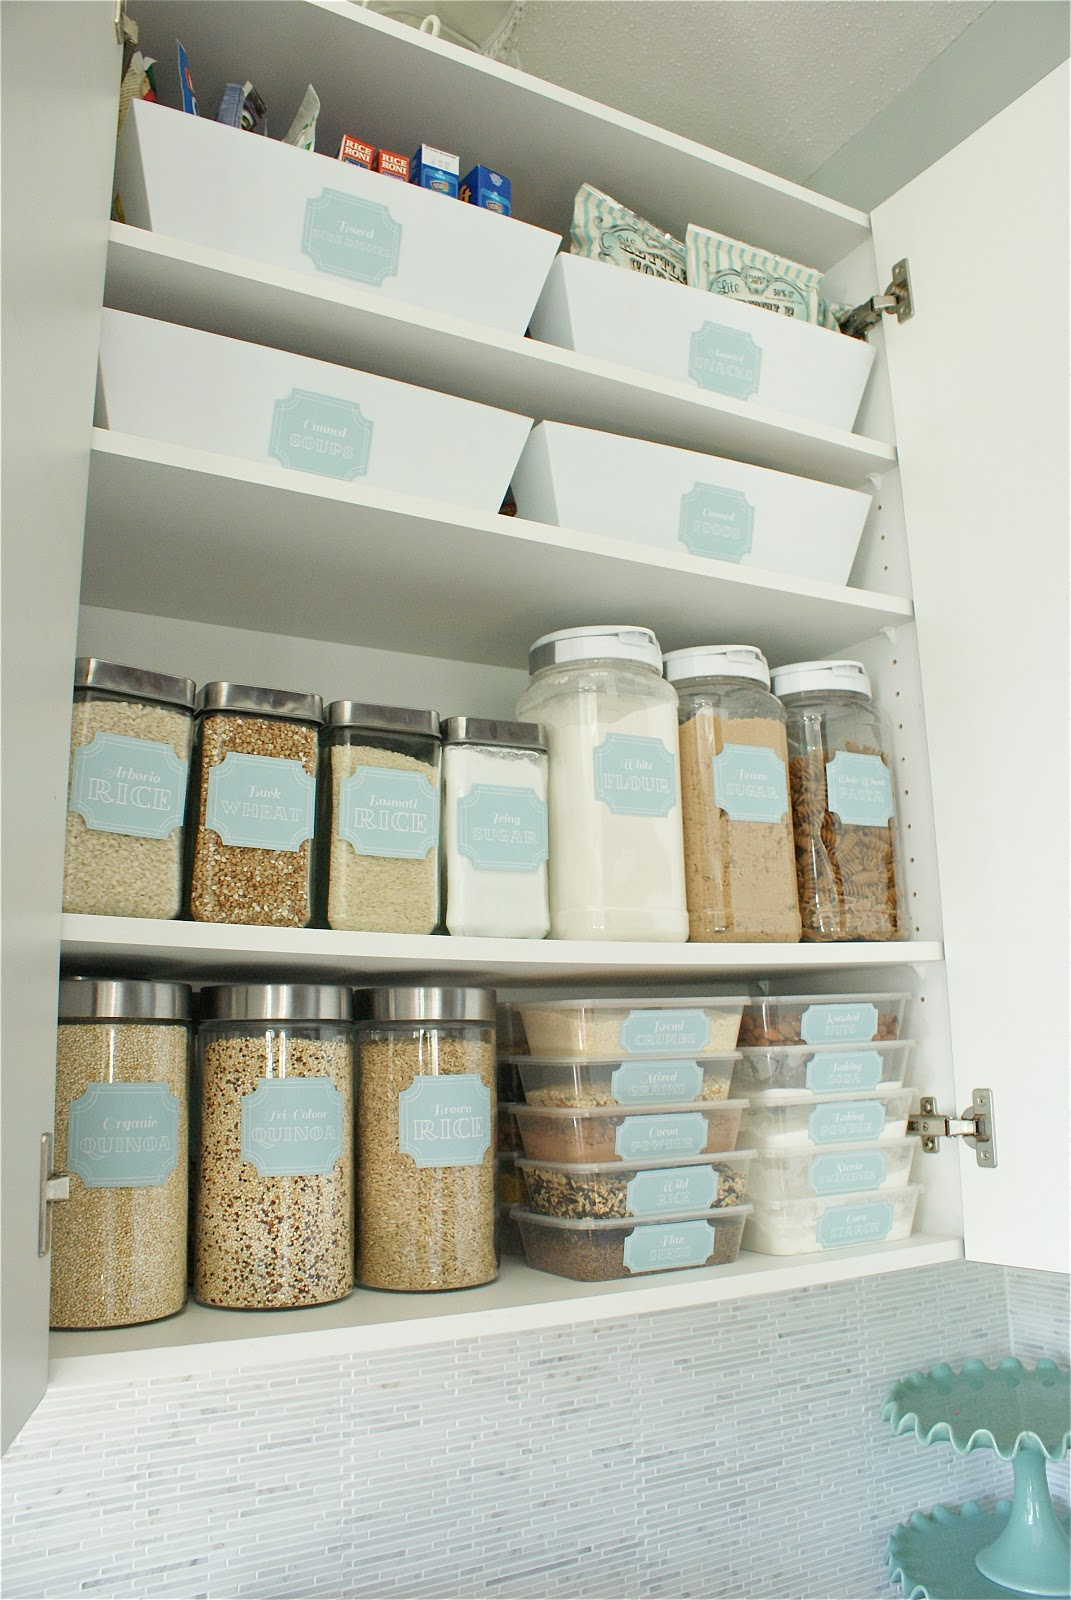 Home kitchen pantry organization ideas mirabelle Organizing home